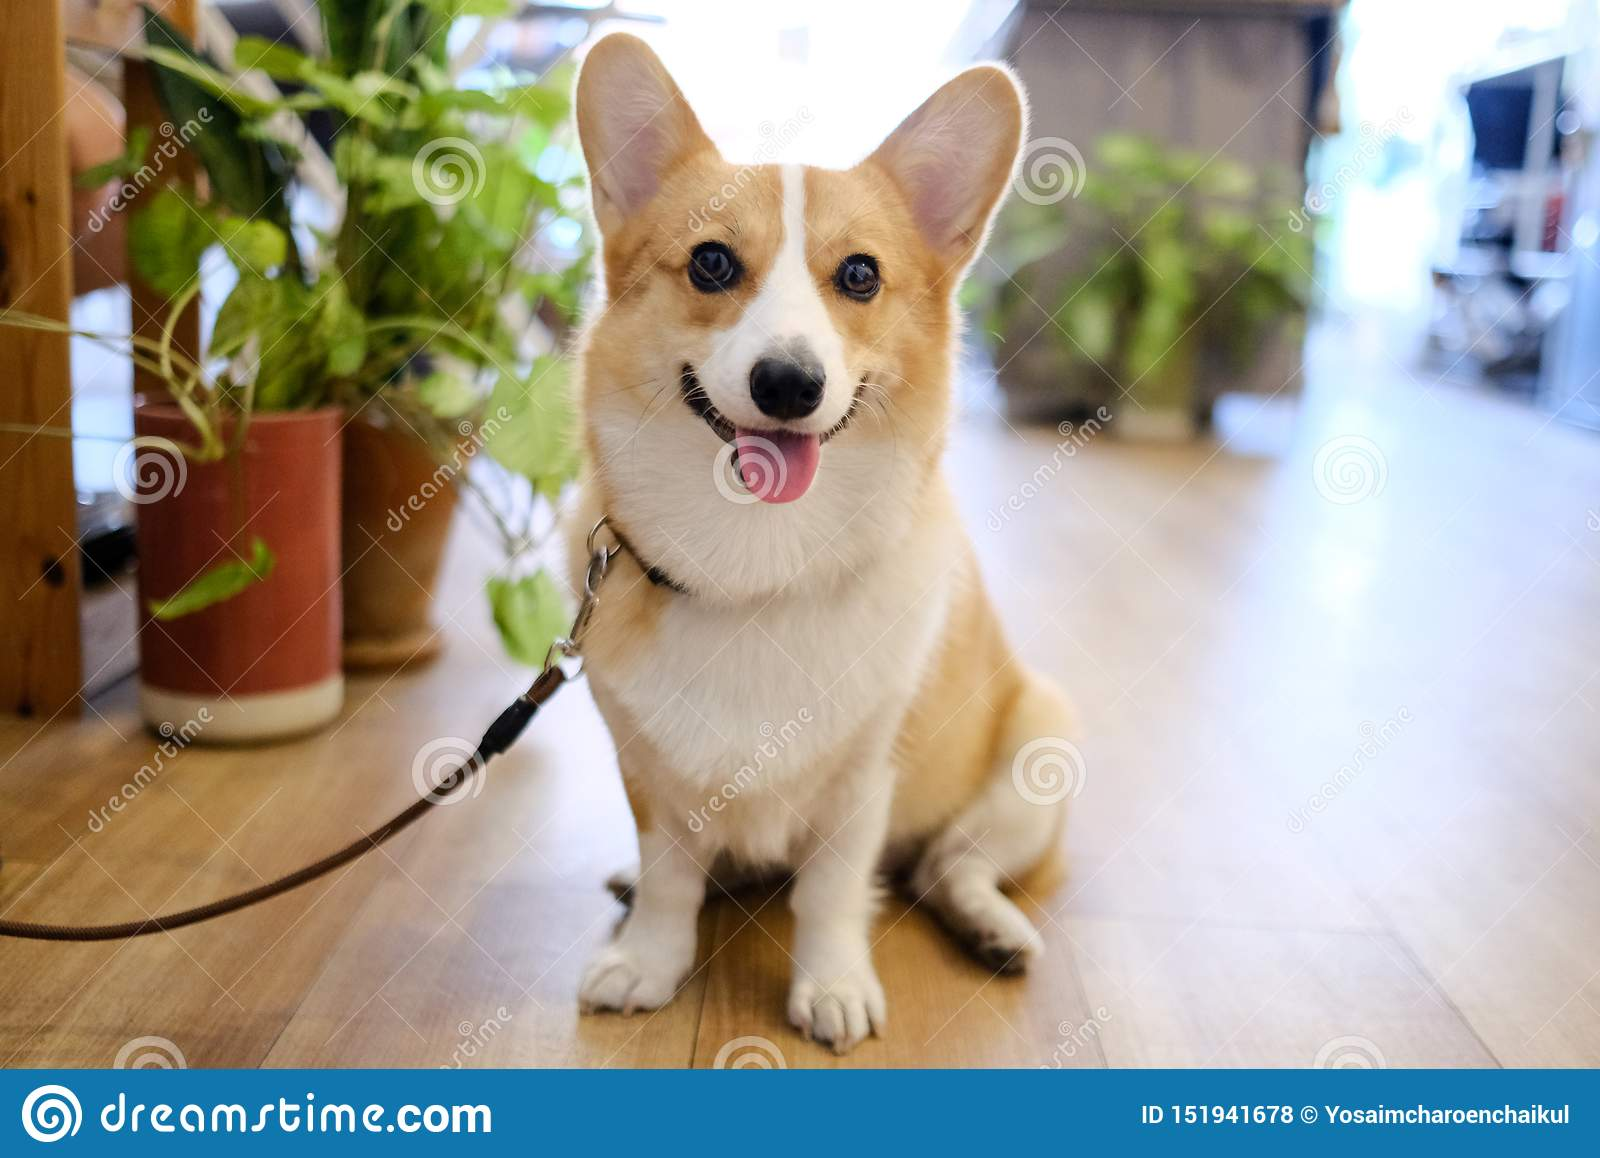 Portrait of adorable welsh corgi dog smile face sitting in coffee cafe.The puppy is sitting waiting for orders from the owner with